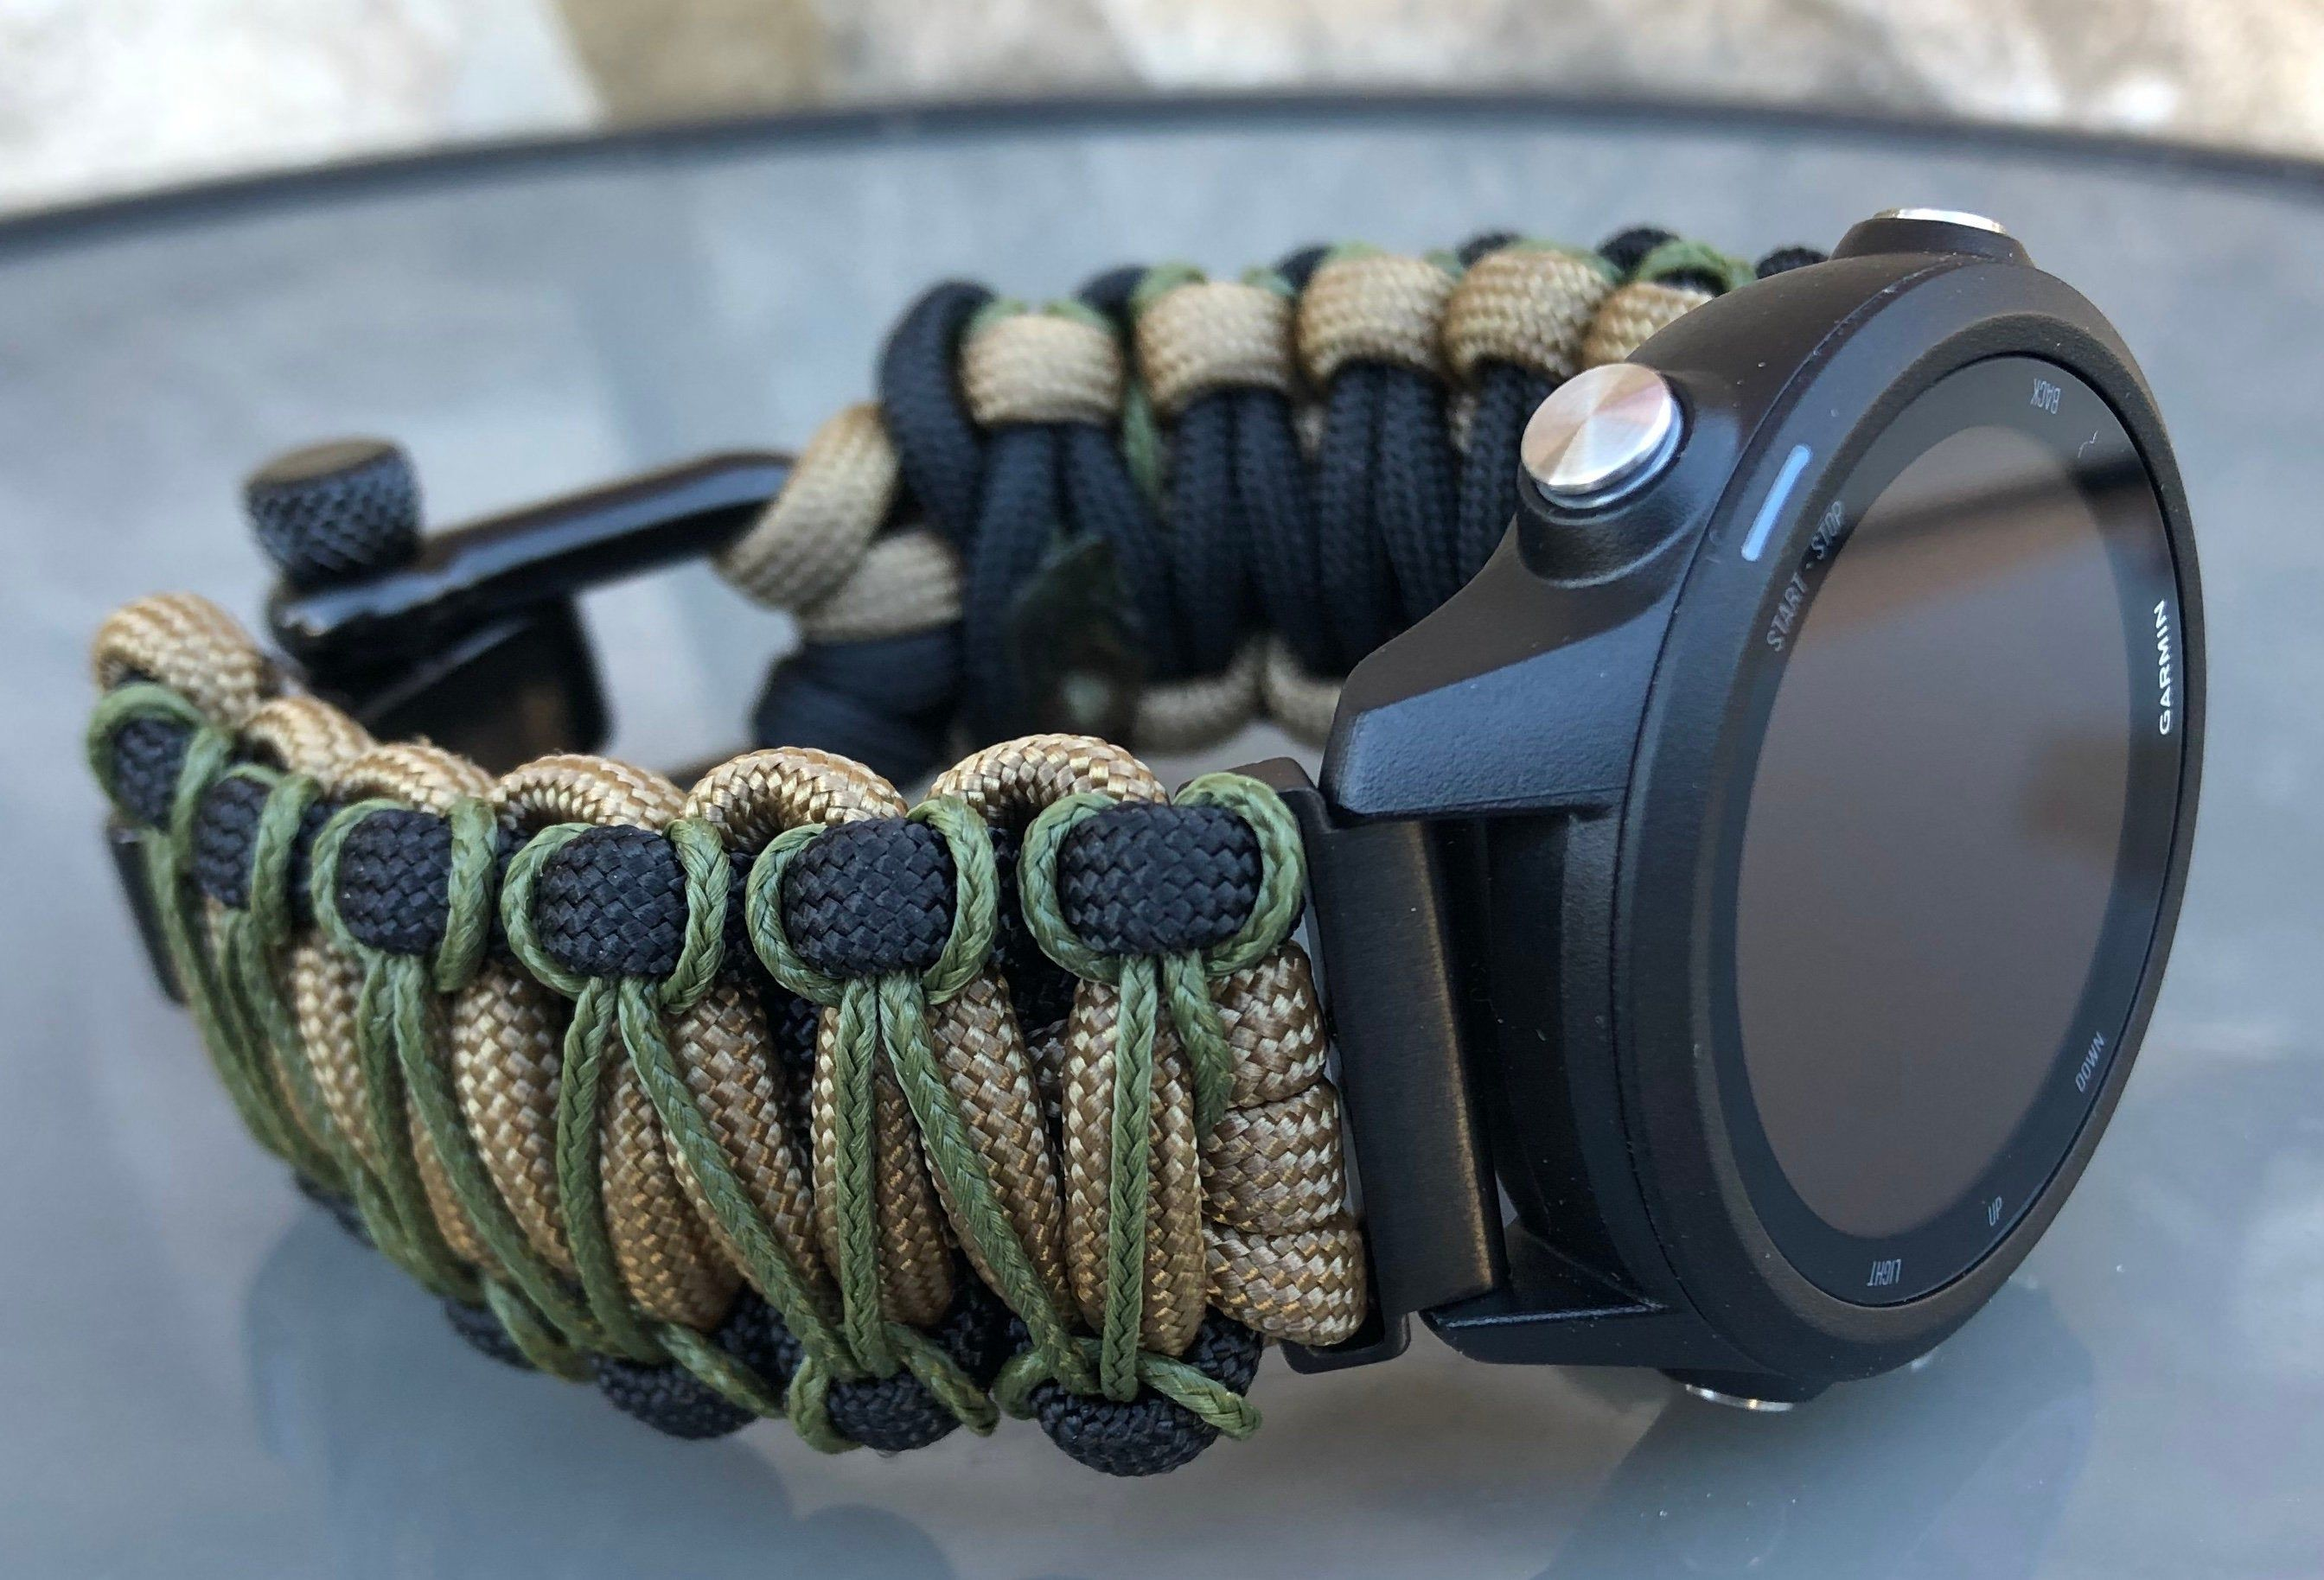 Garmin Forerunner Paracord Watch Band 550 Paracord Watch Band